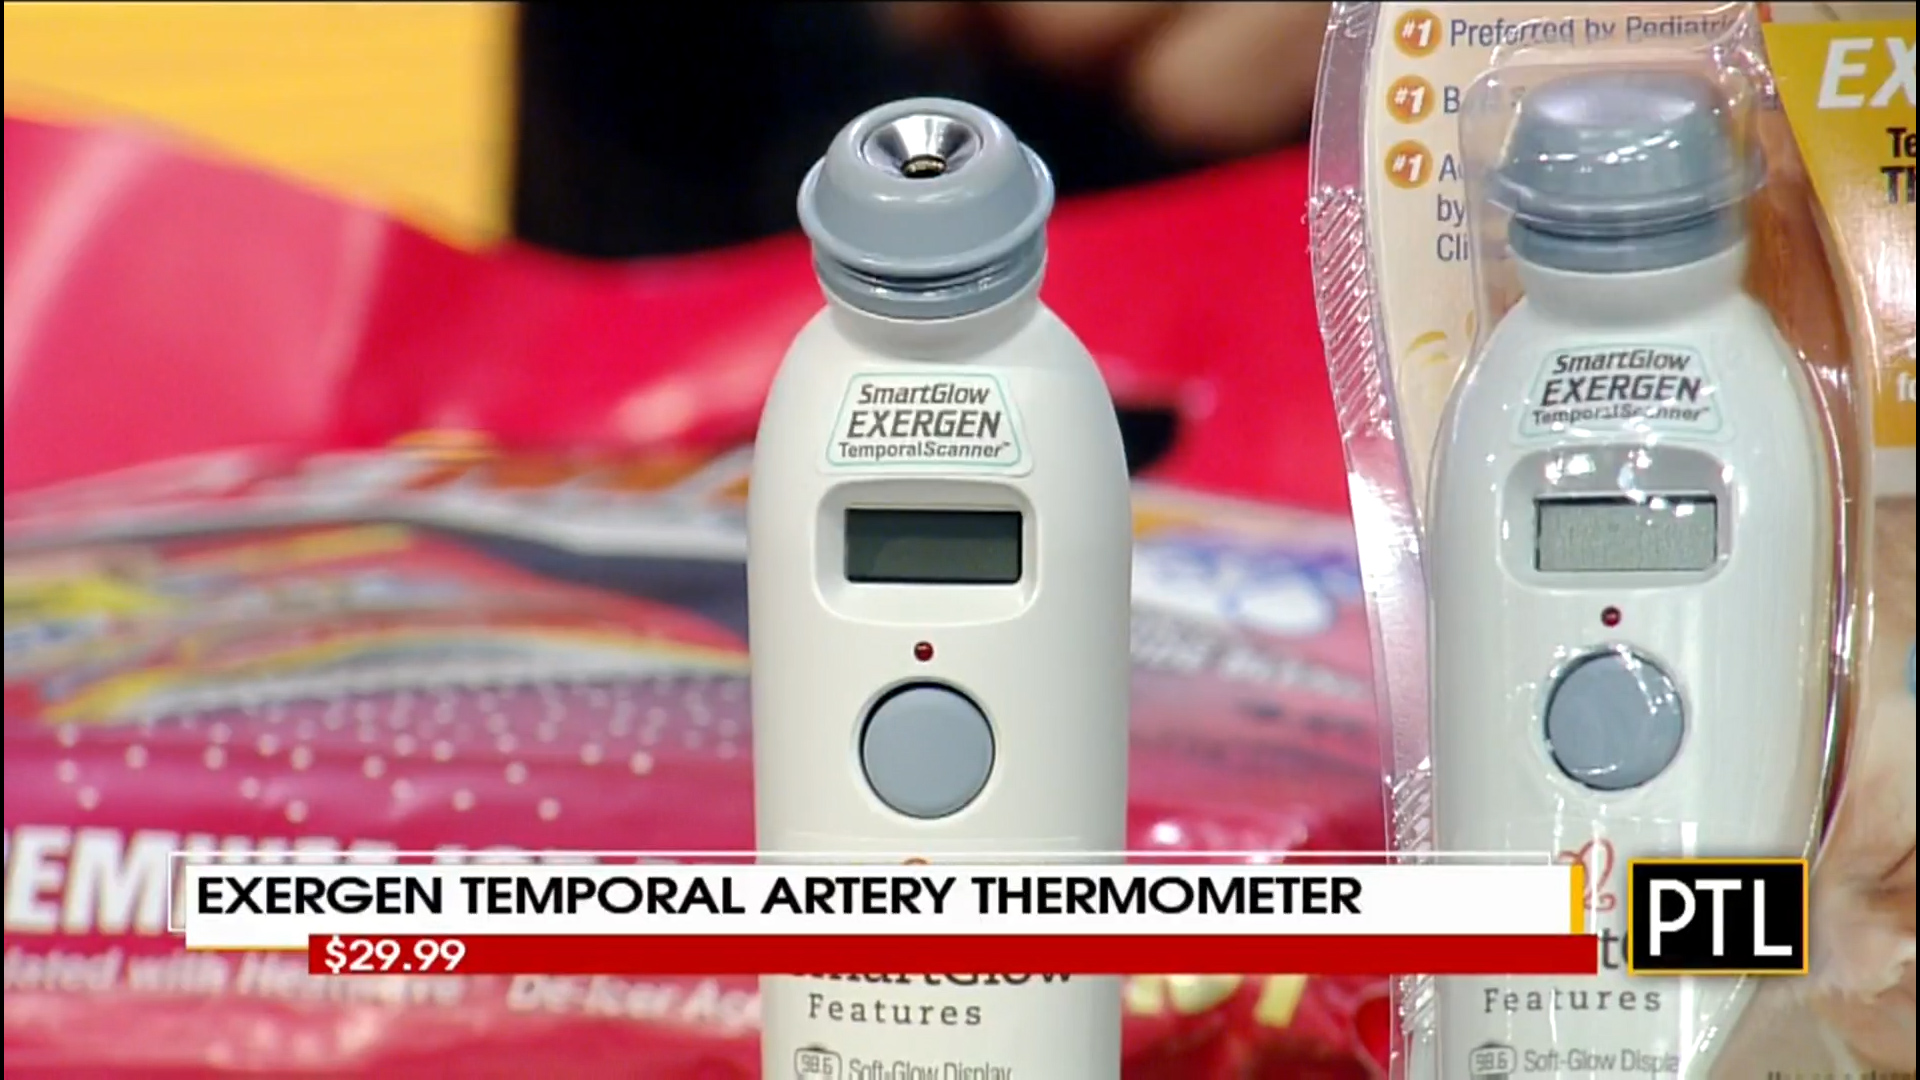 EXERGEN TEMPORAL ARTERY THERMOMETER - $29.99Shop Now